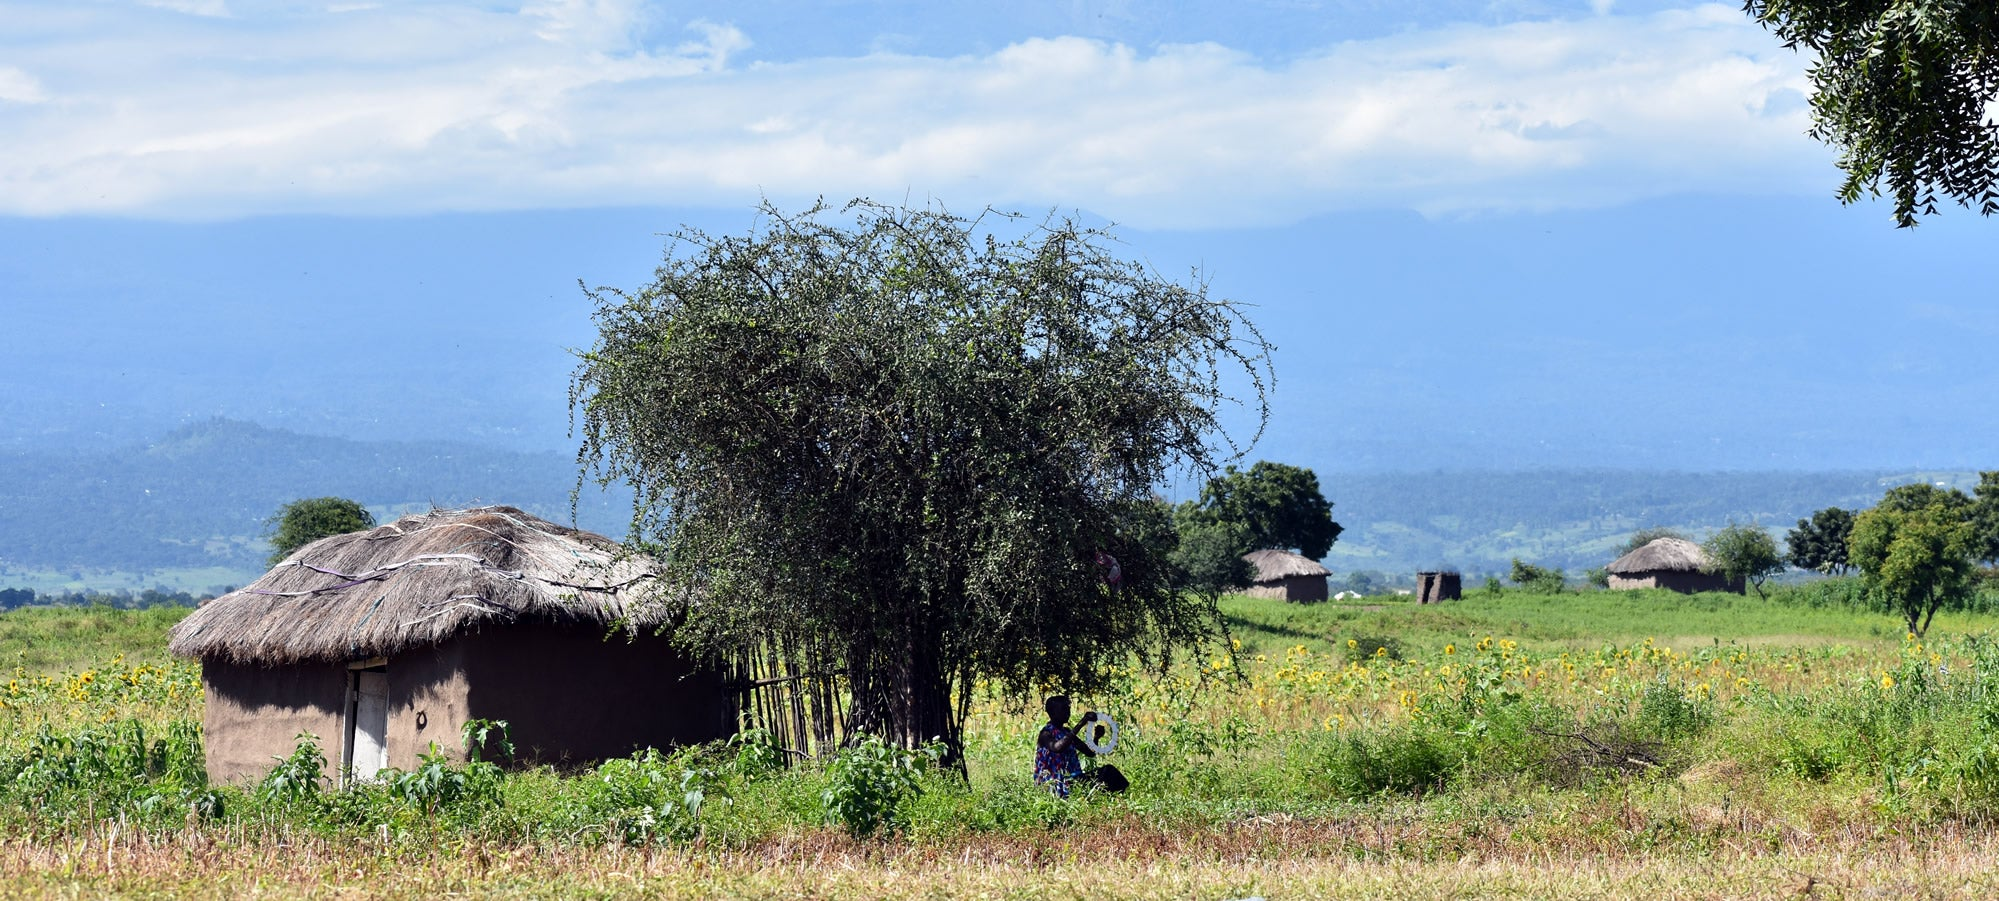 The house where Mollel grew up in her village in Tanzania.